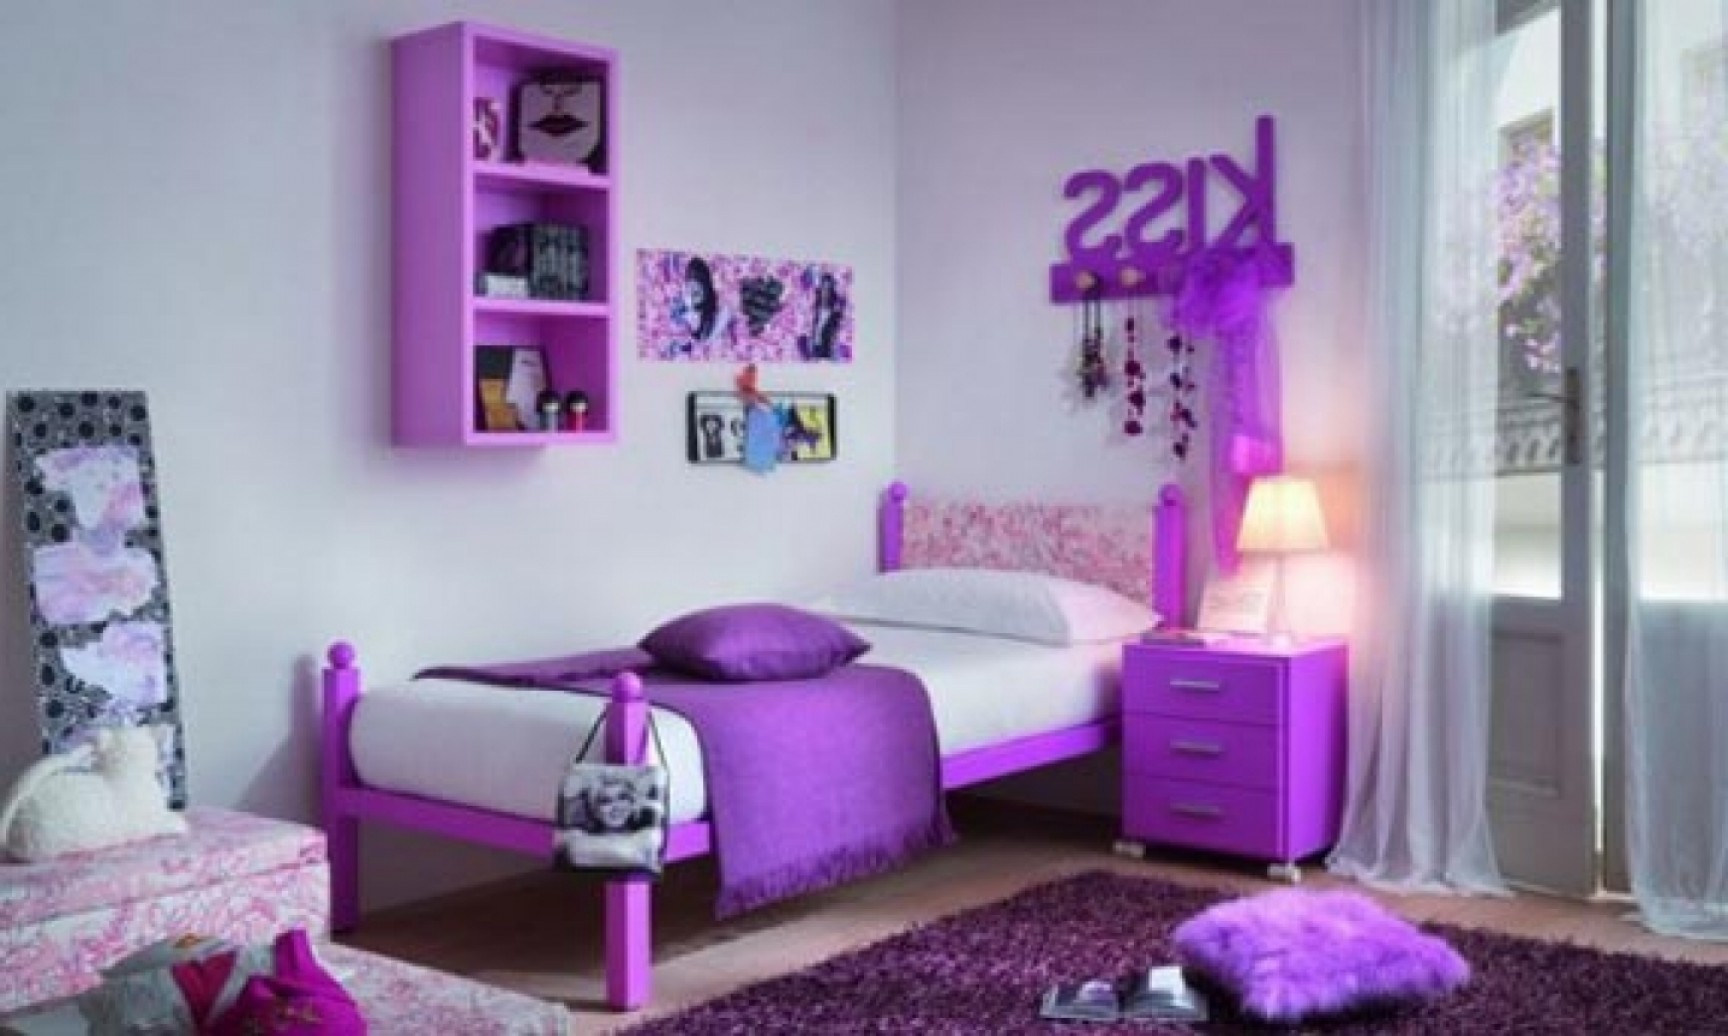 5 tips in small bedroom ideas for teenagers for Bedroom ideas for teens